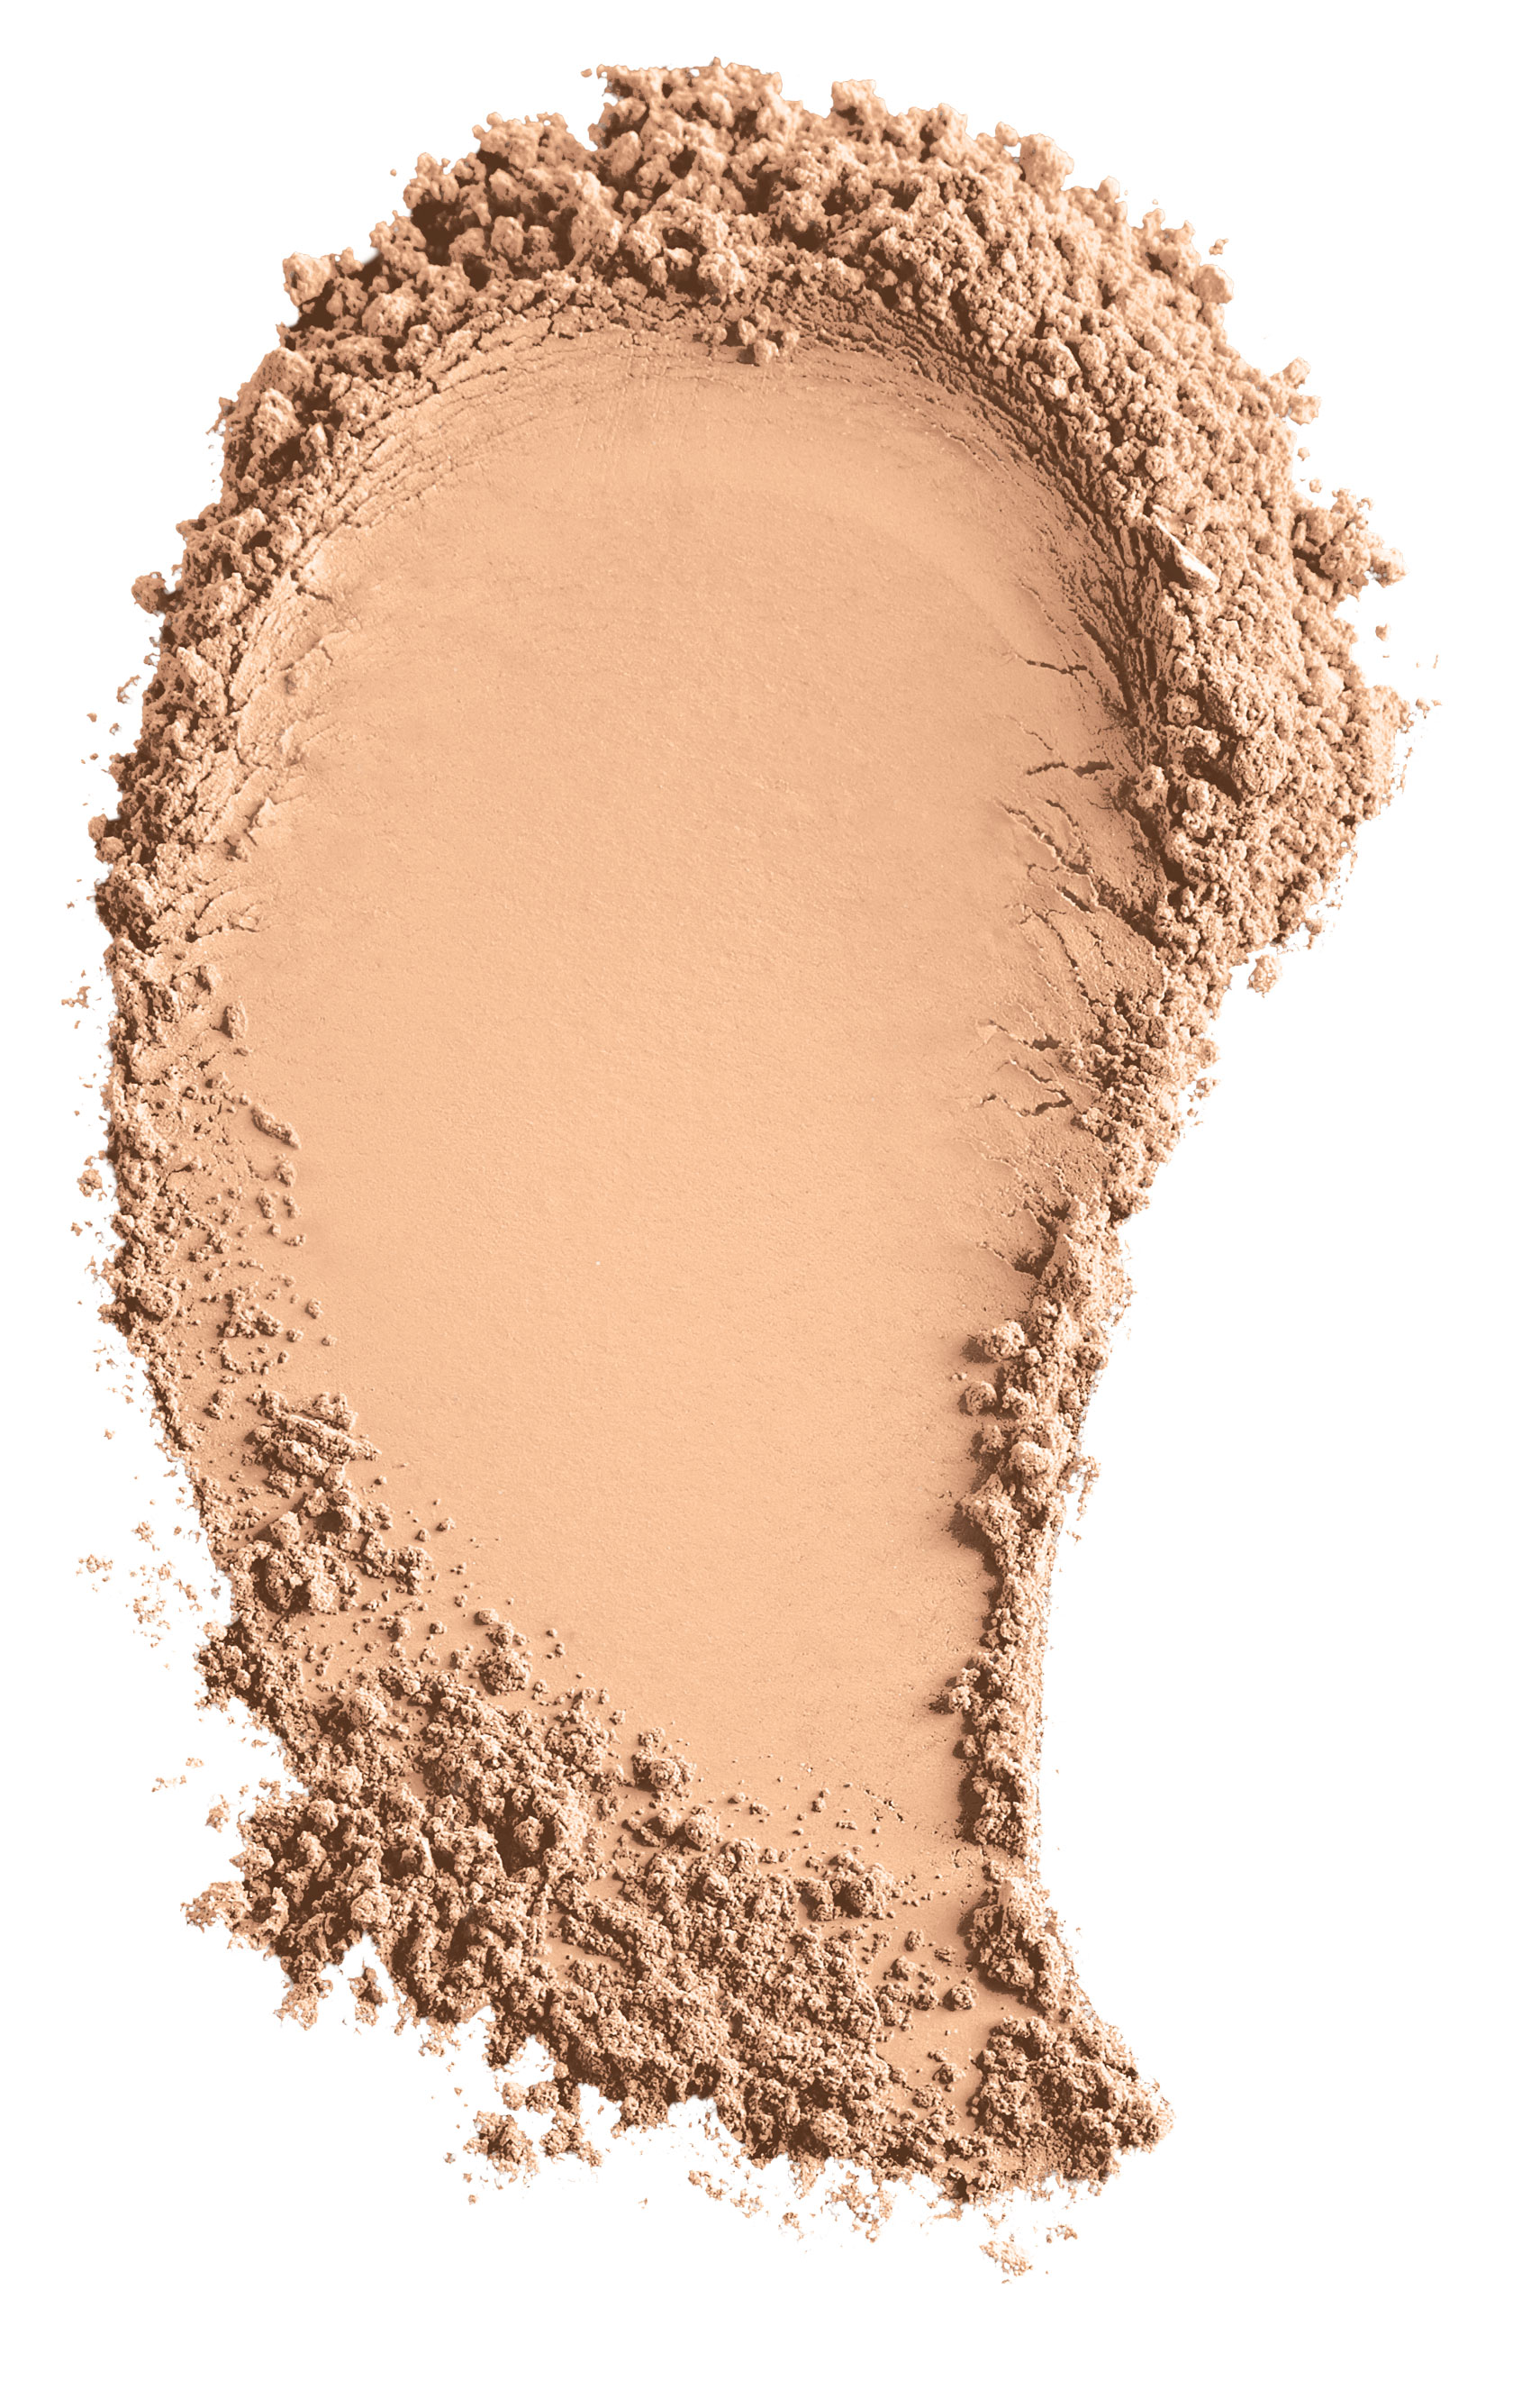 _Foundation_Matte_Fairly_Light_Smear